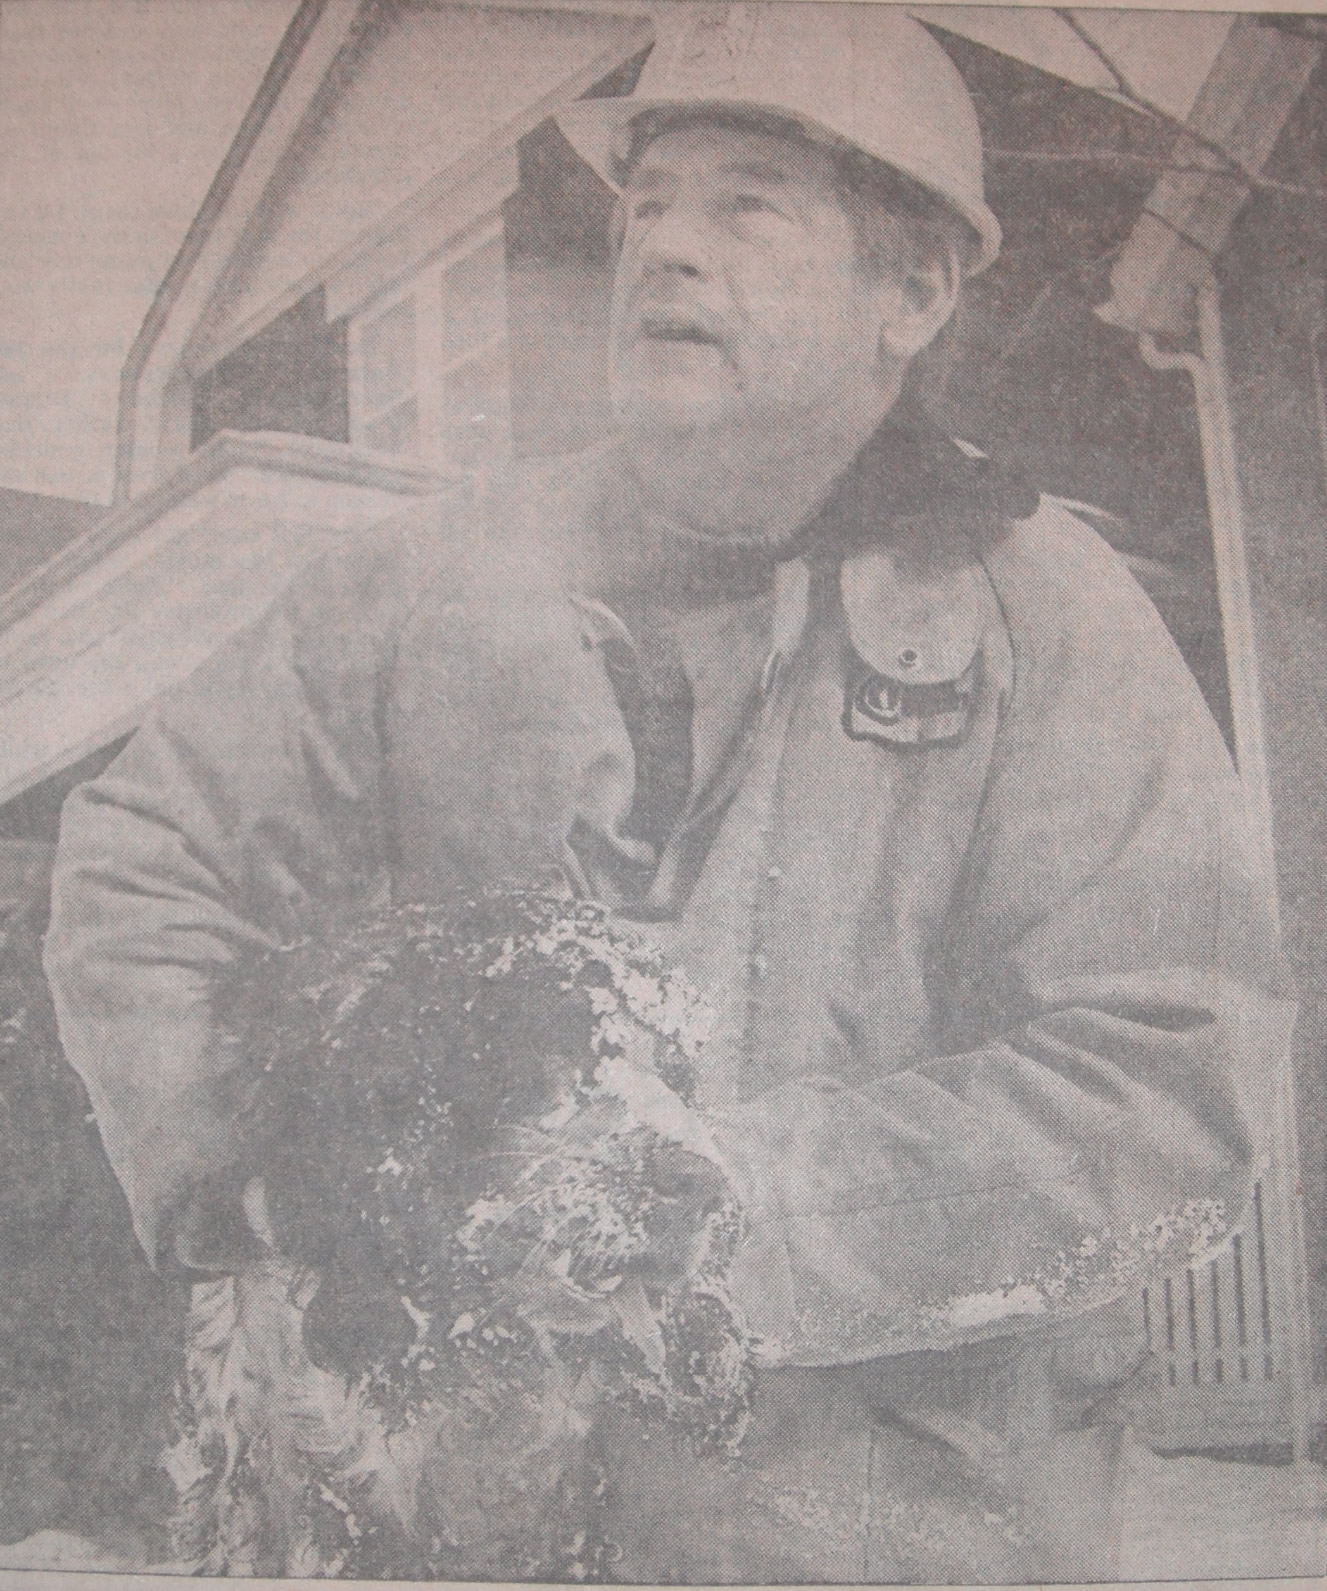 Firefighter holding black spaniel rescued from a house fire.